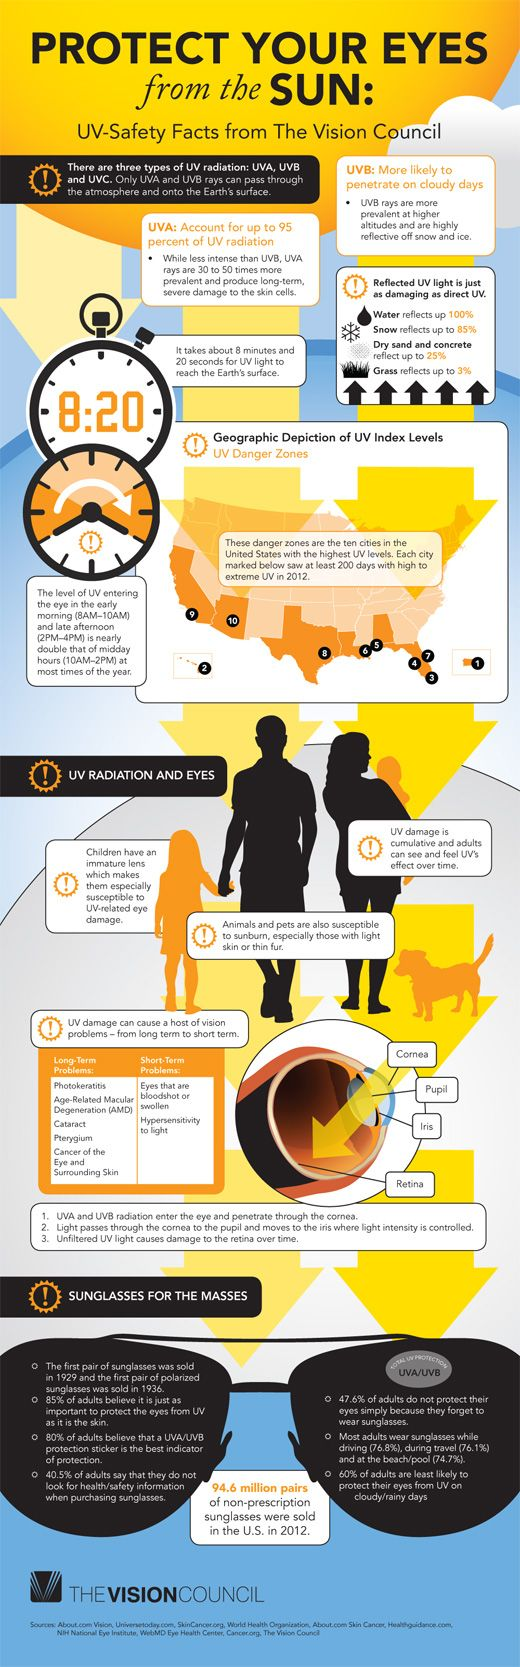 13 best images about UV Safety on Pinterest